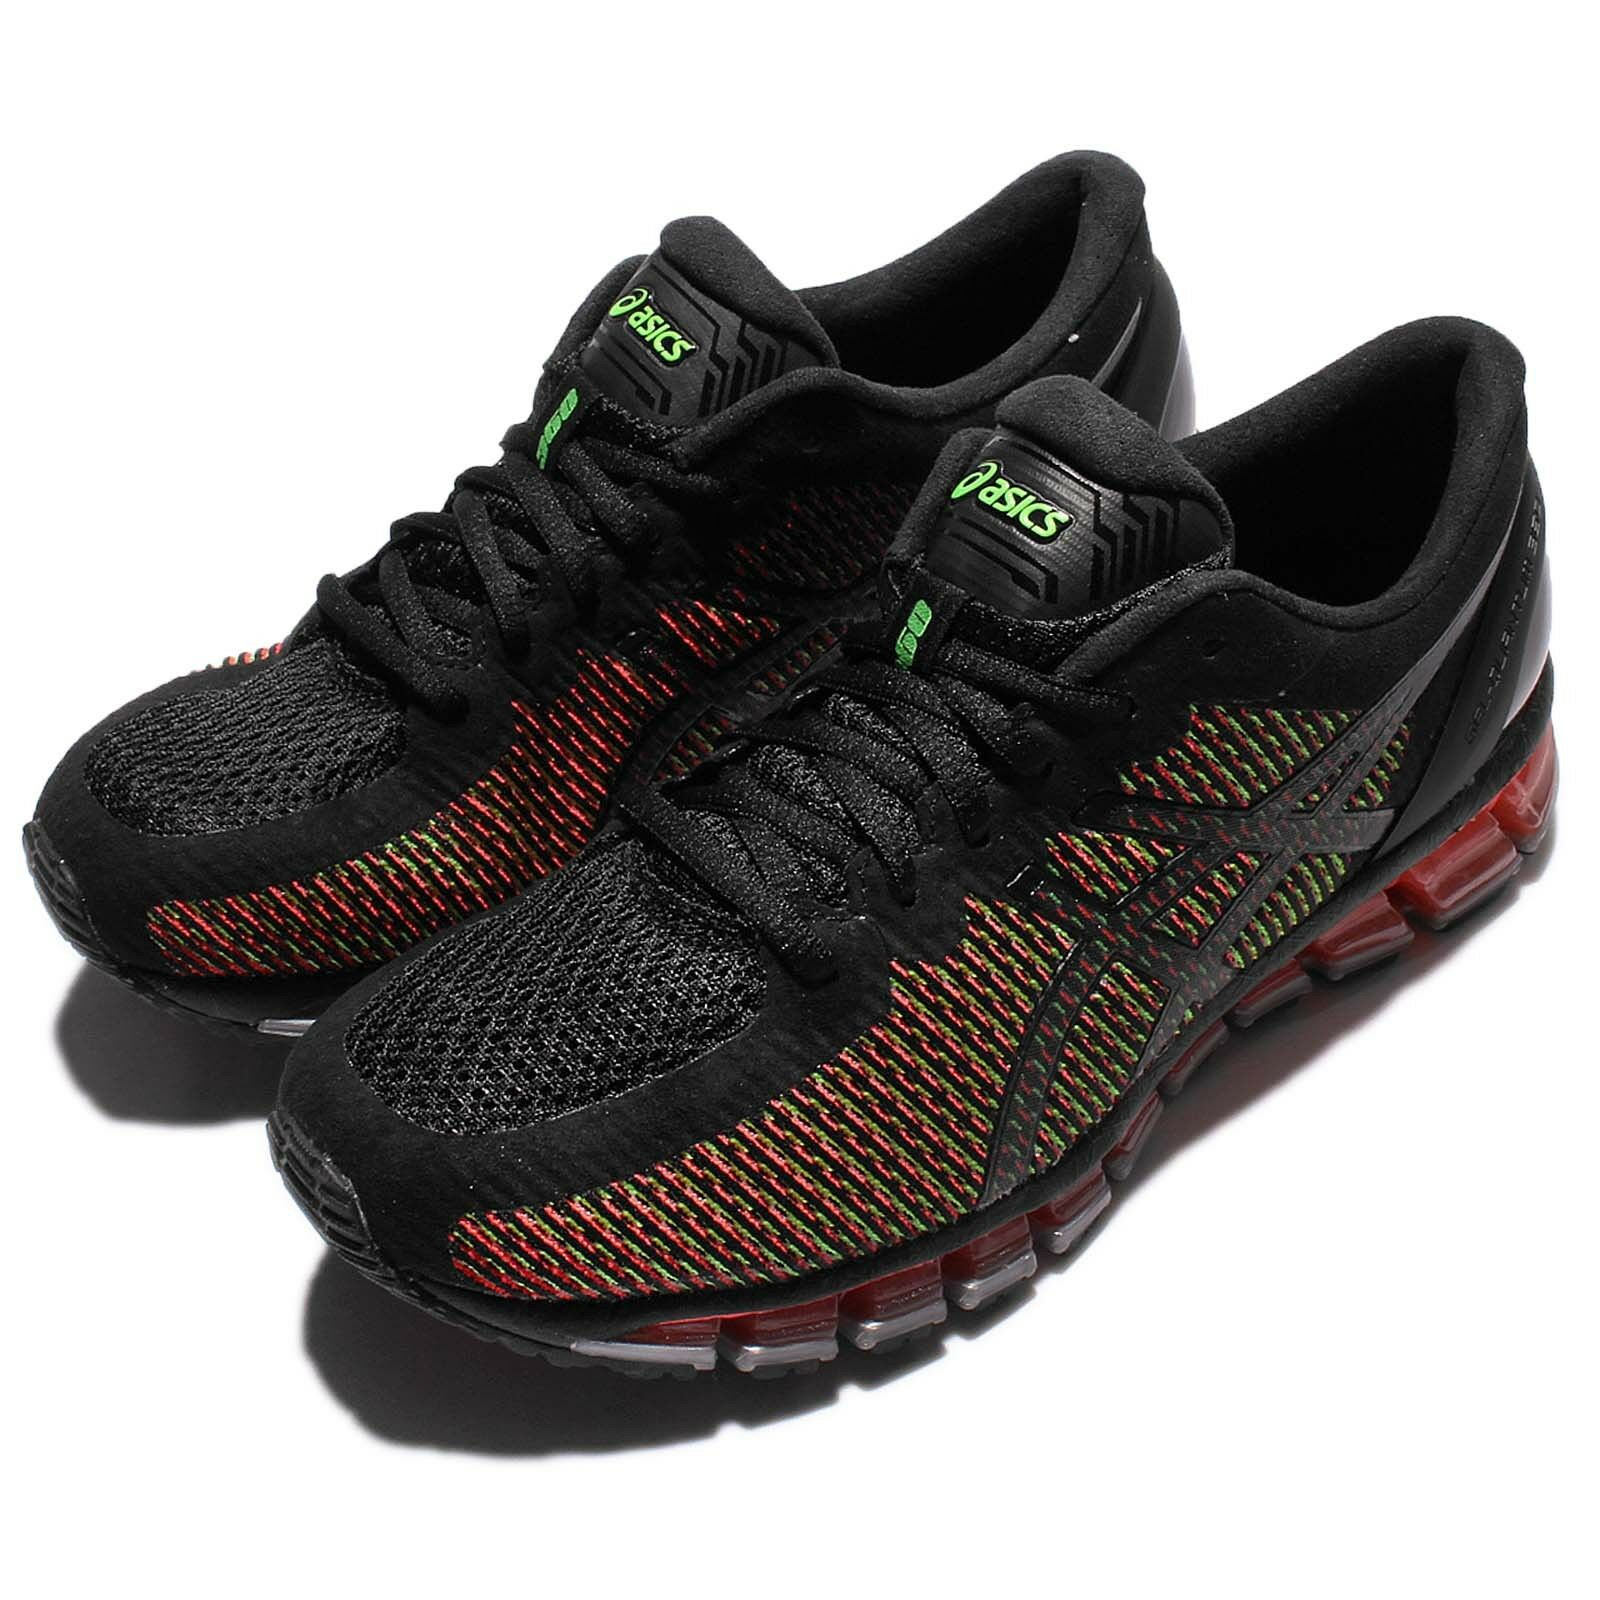 Asics Gel-Quantum 360 CM Chameleon Black Red Men Cushion Running Shoe T6G1N-9001 Cheap and beautiful fashion